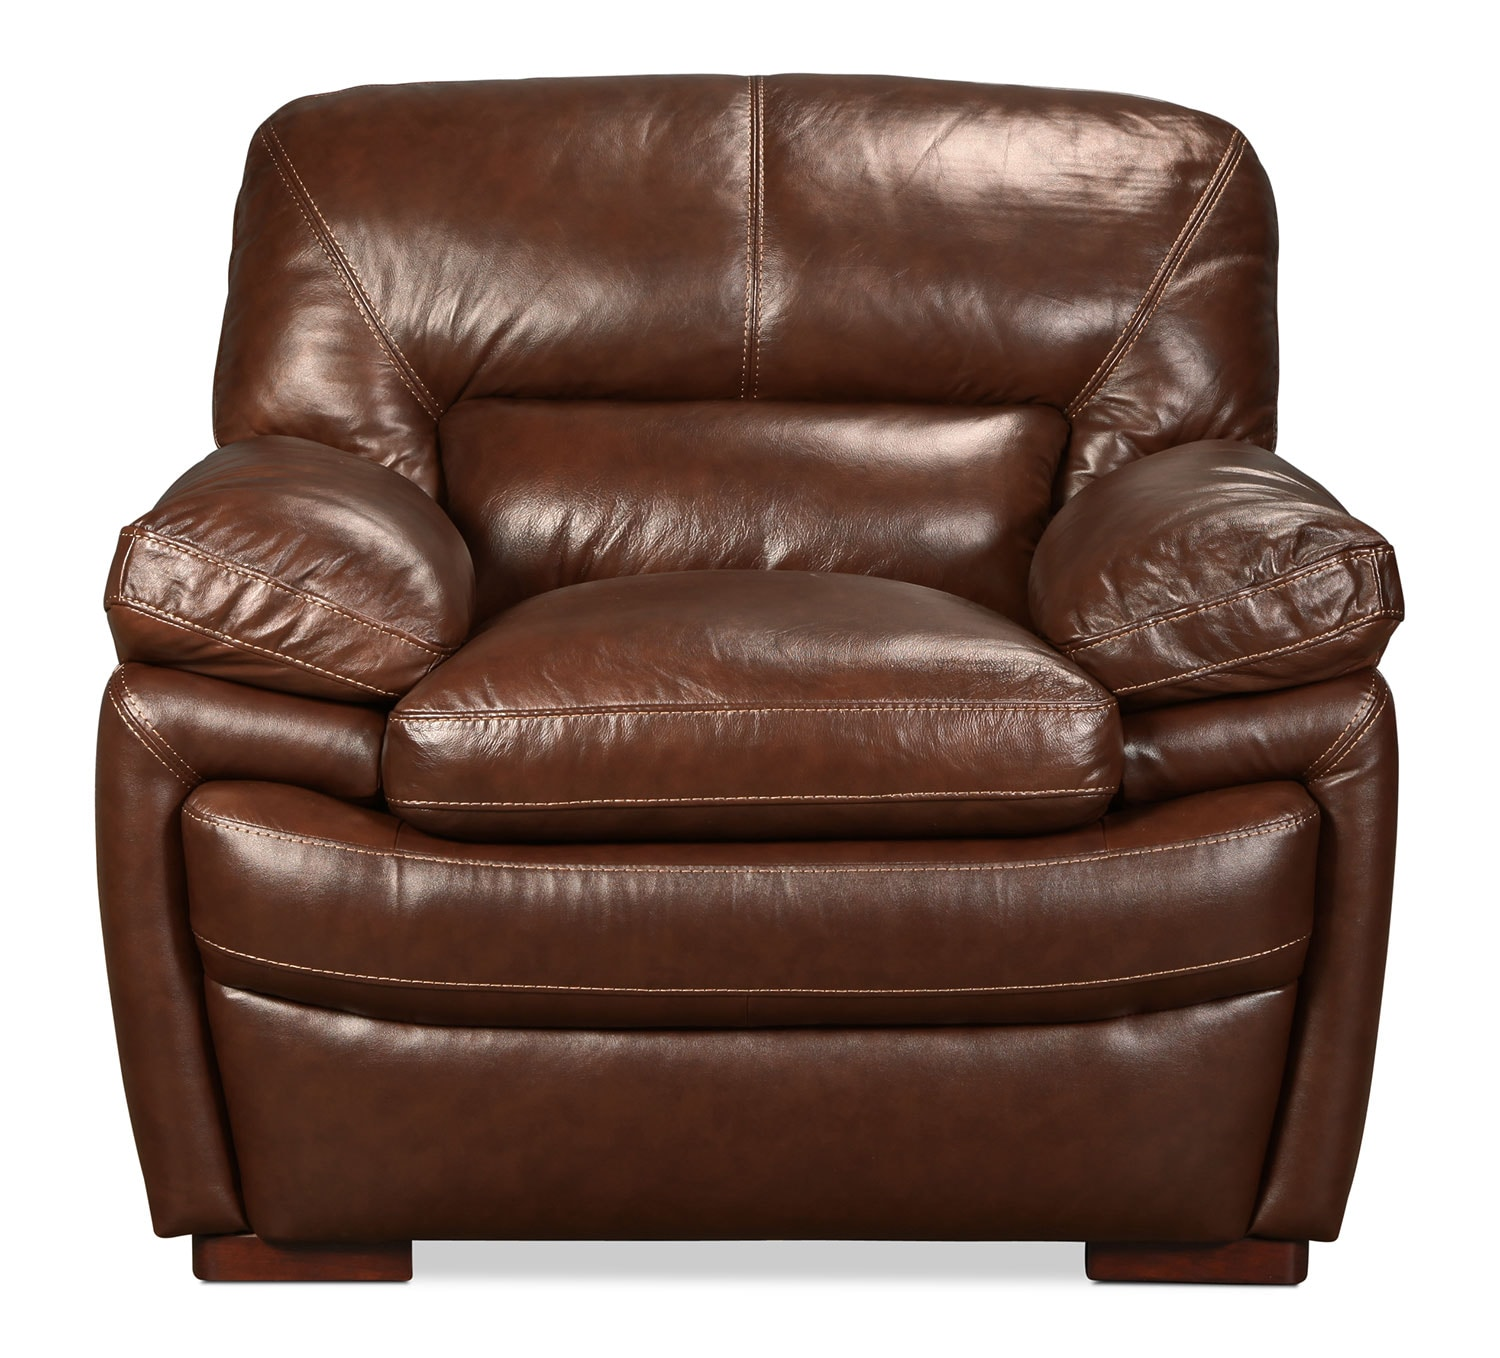 Living Room Furniture - Hayes Chair - Brown